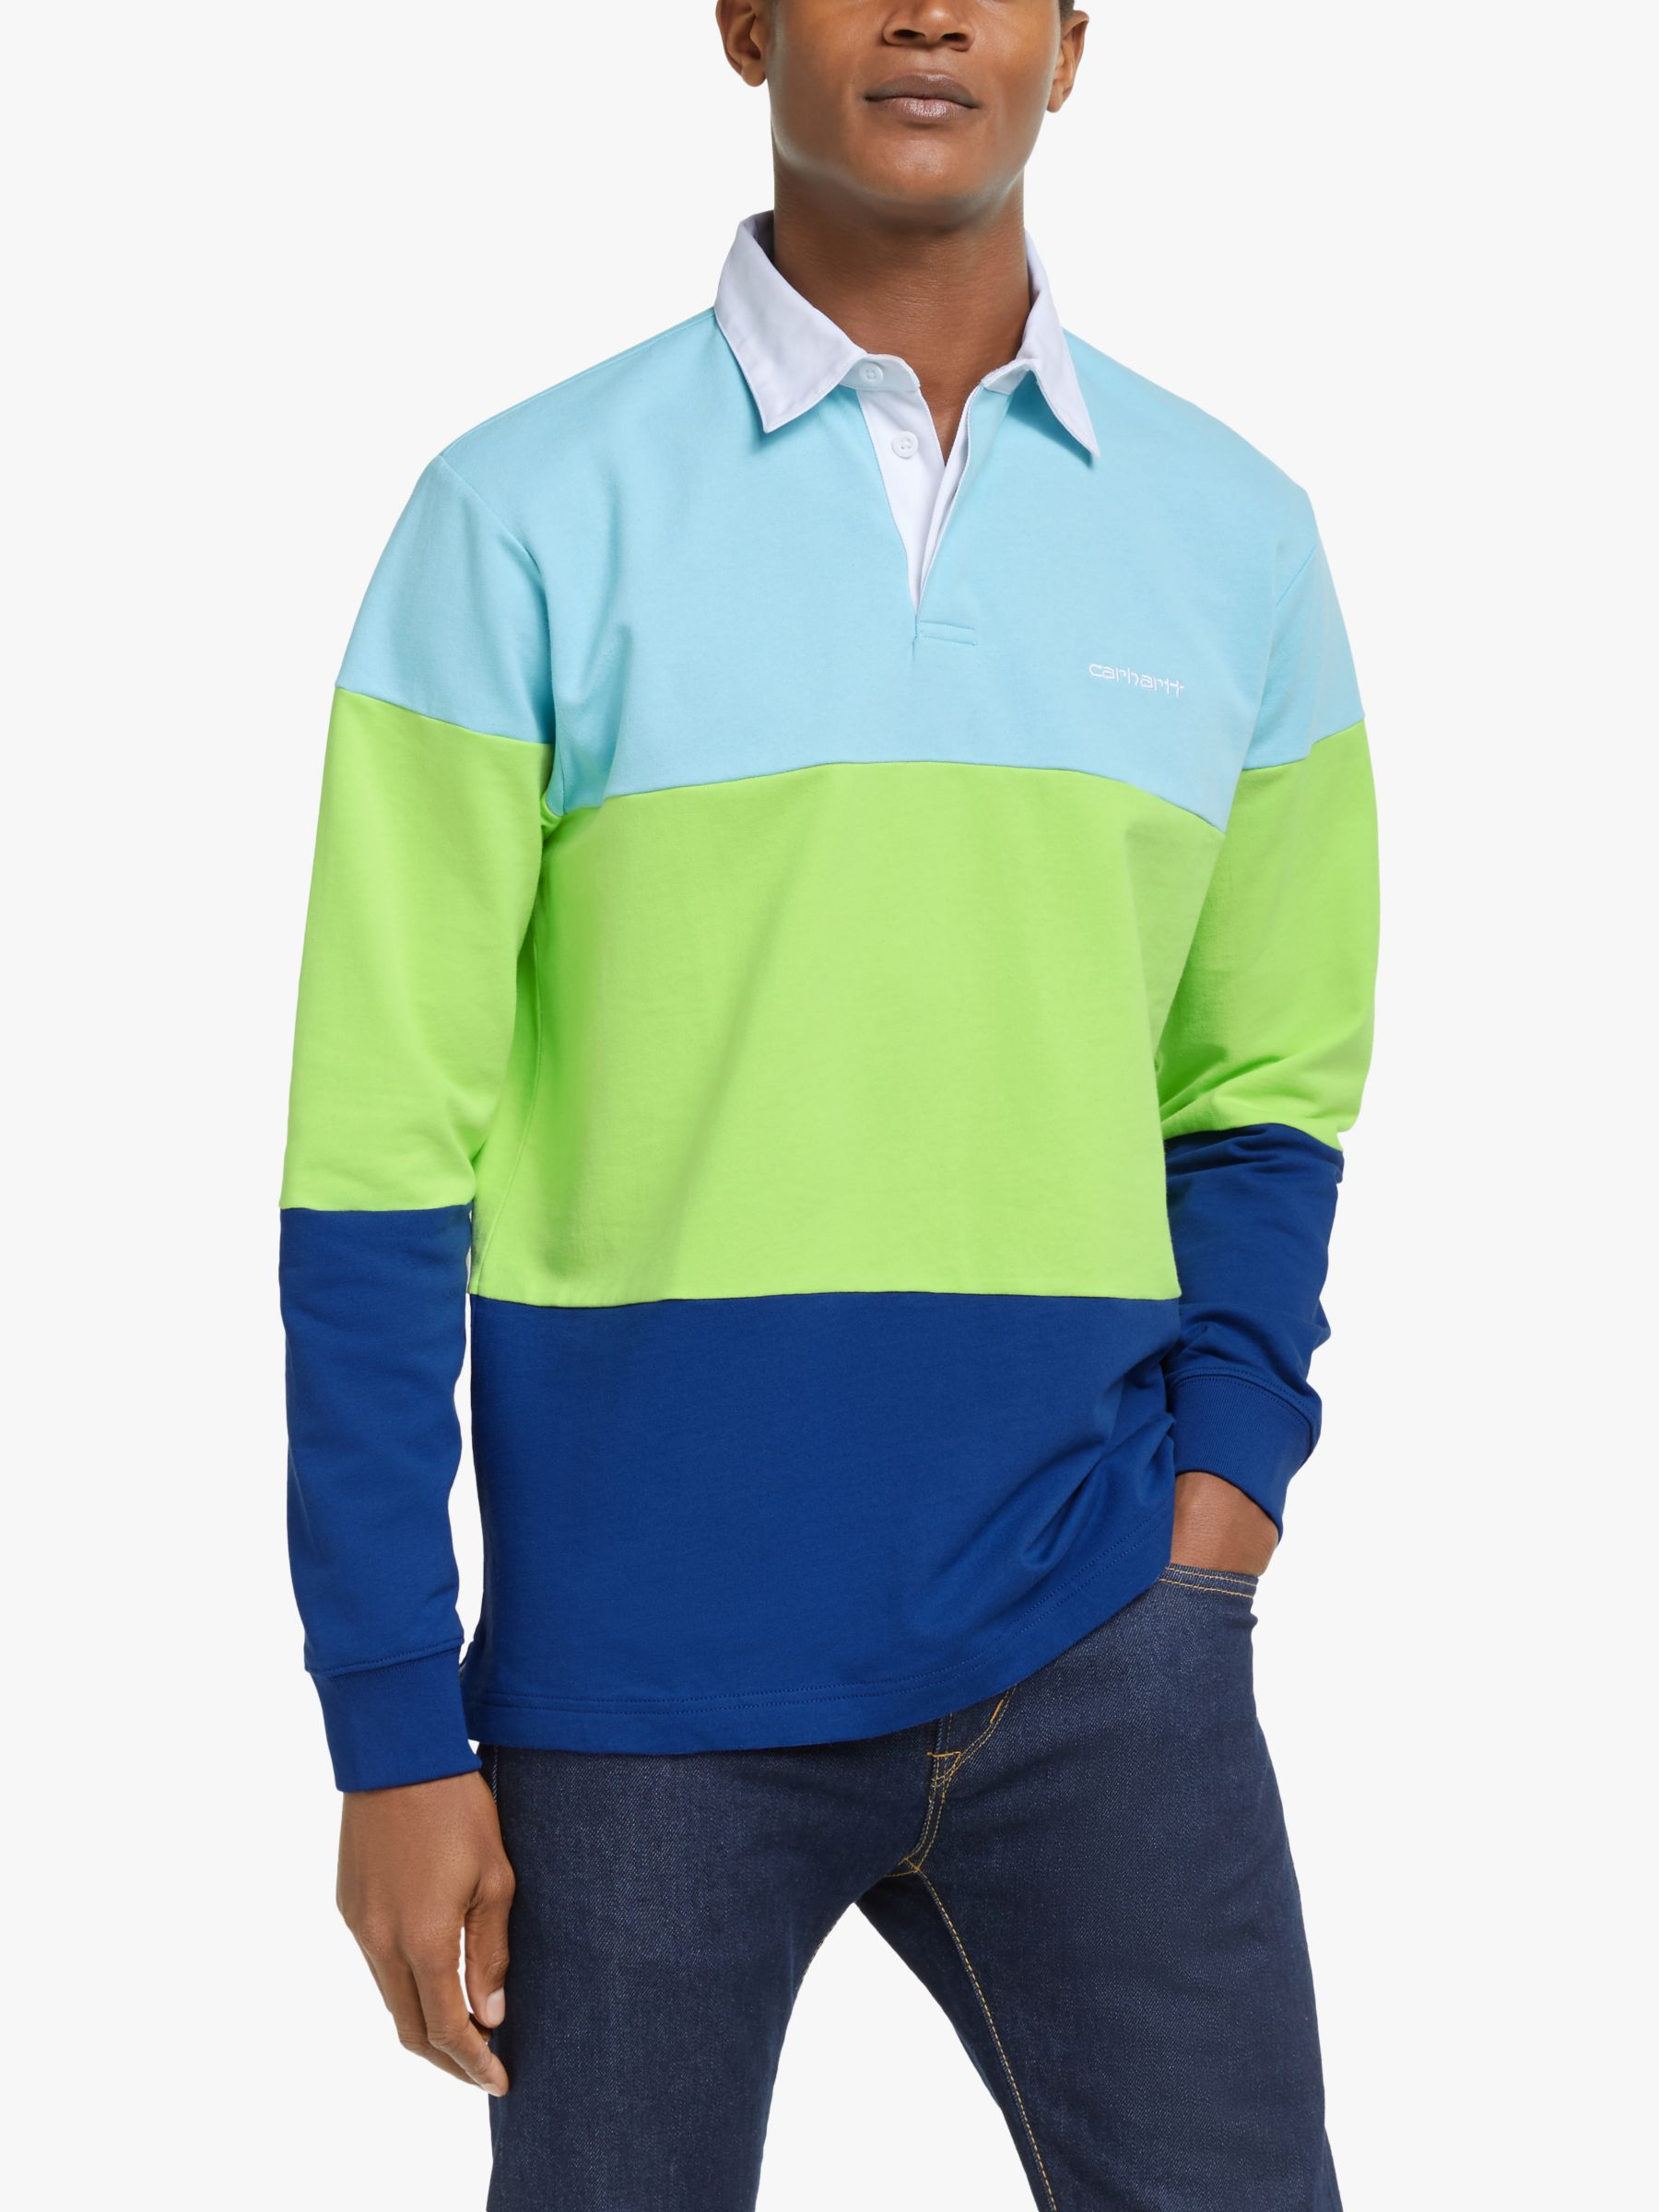 Carhartt WIP Carhartt WIP Newport Rugby Polo Shirt, Window/Lime/Submarine